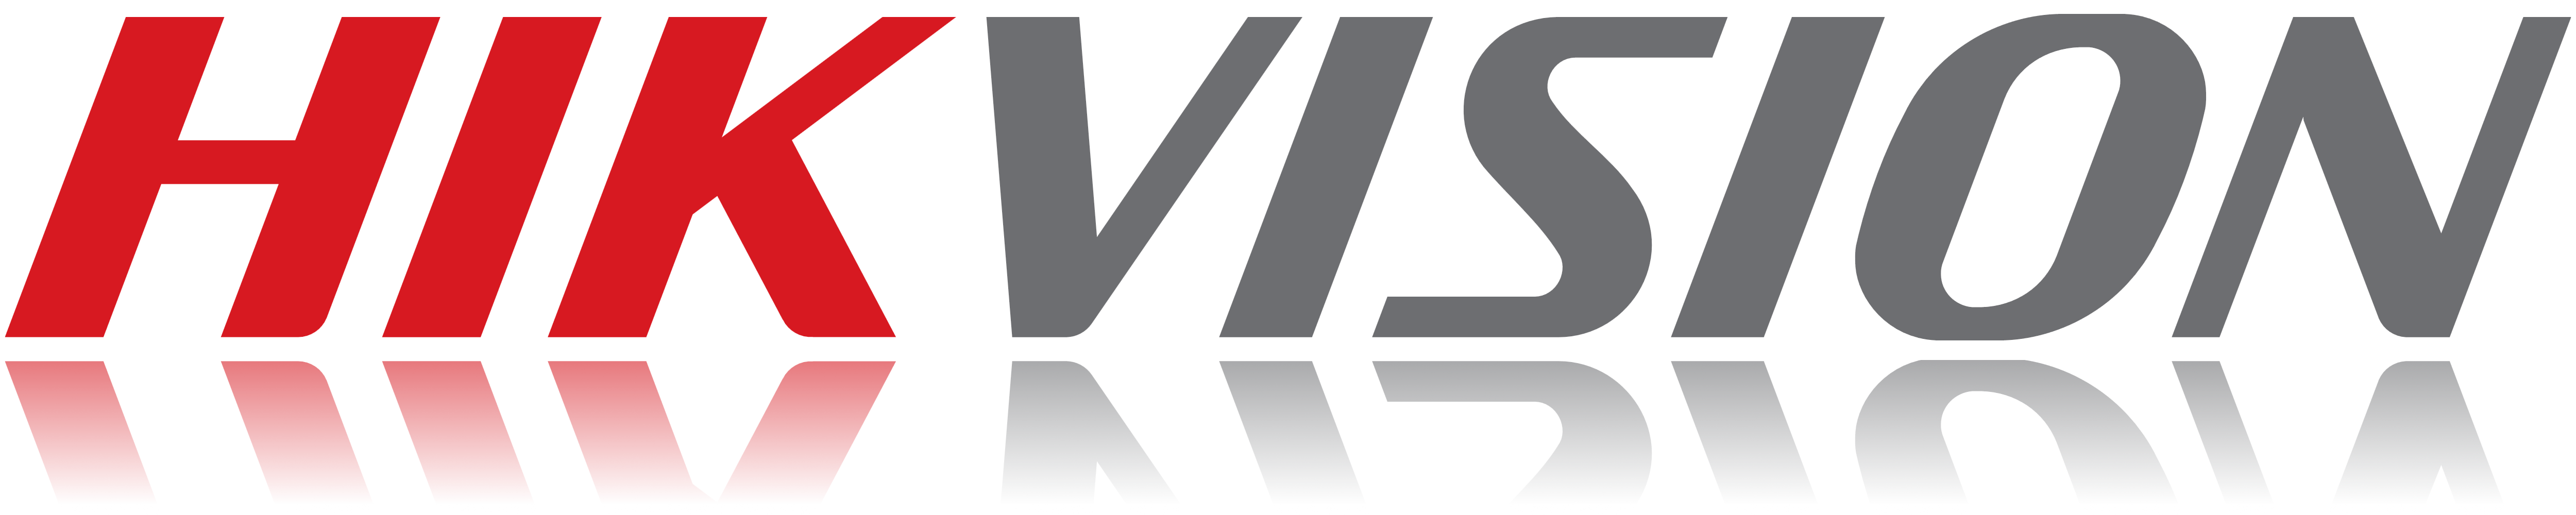 HikVision logo for Security Cameras